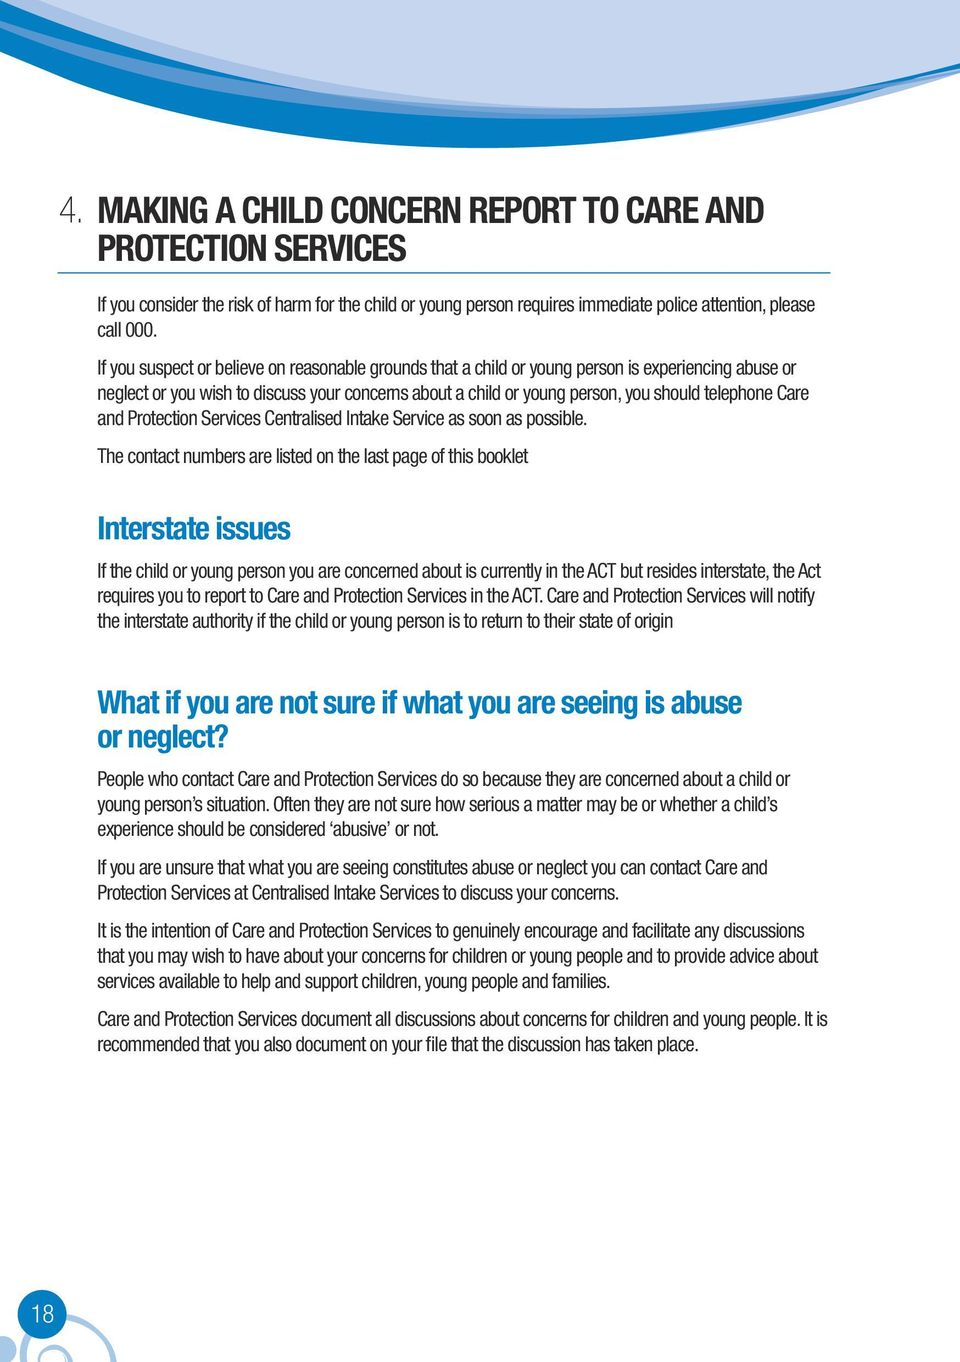 Care and Protection Services Centralised Intake Service as soon as possible.